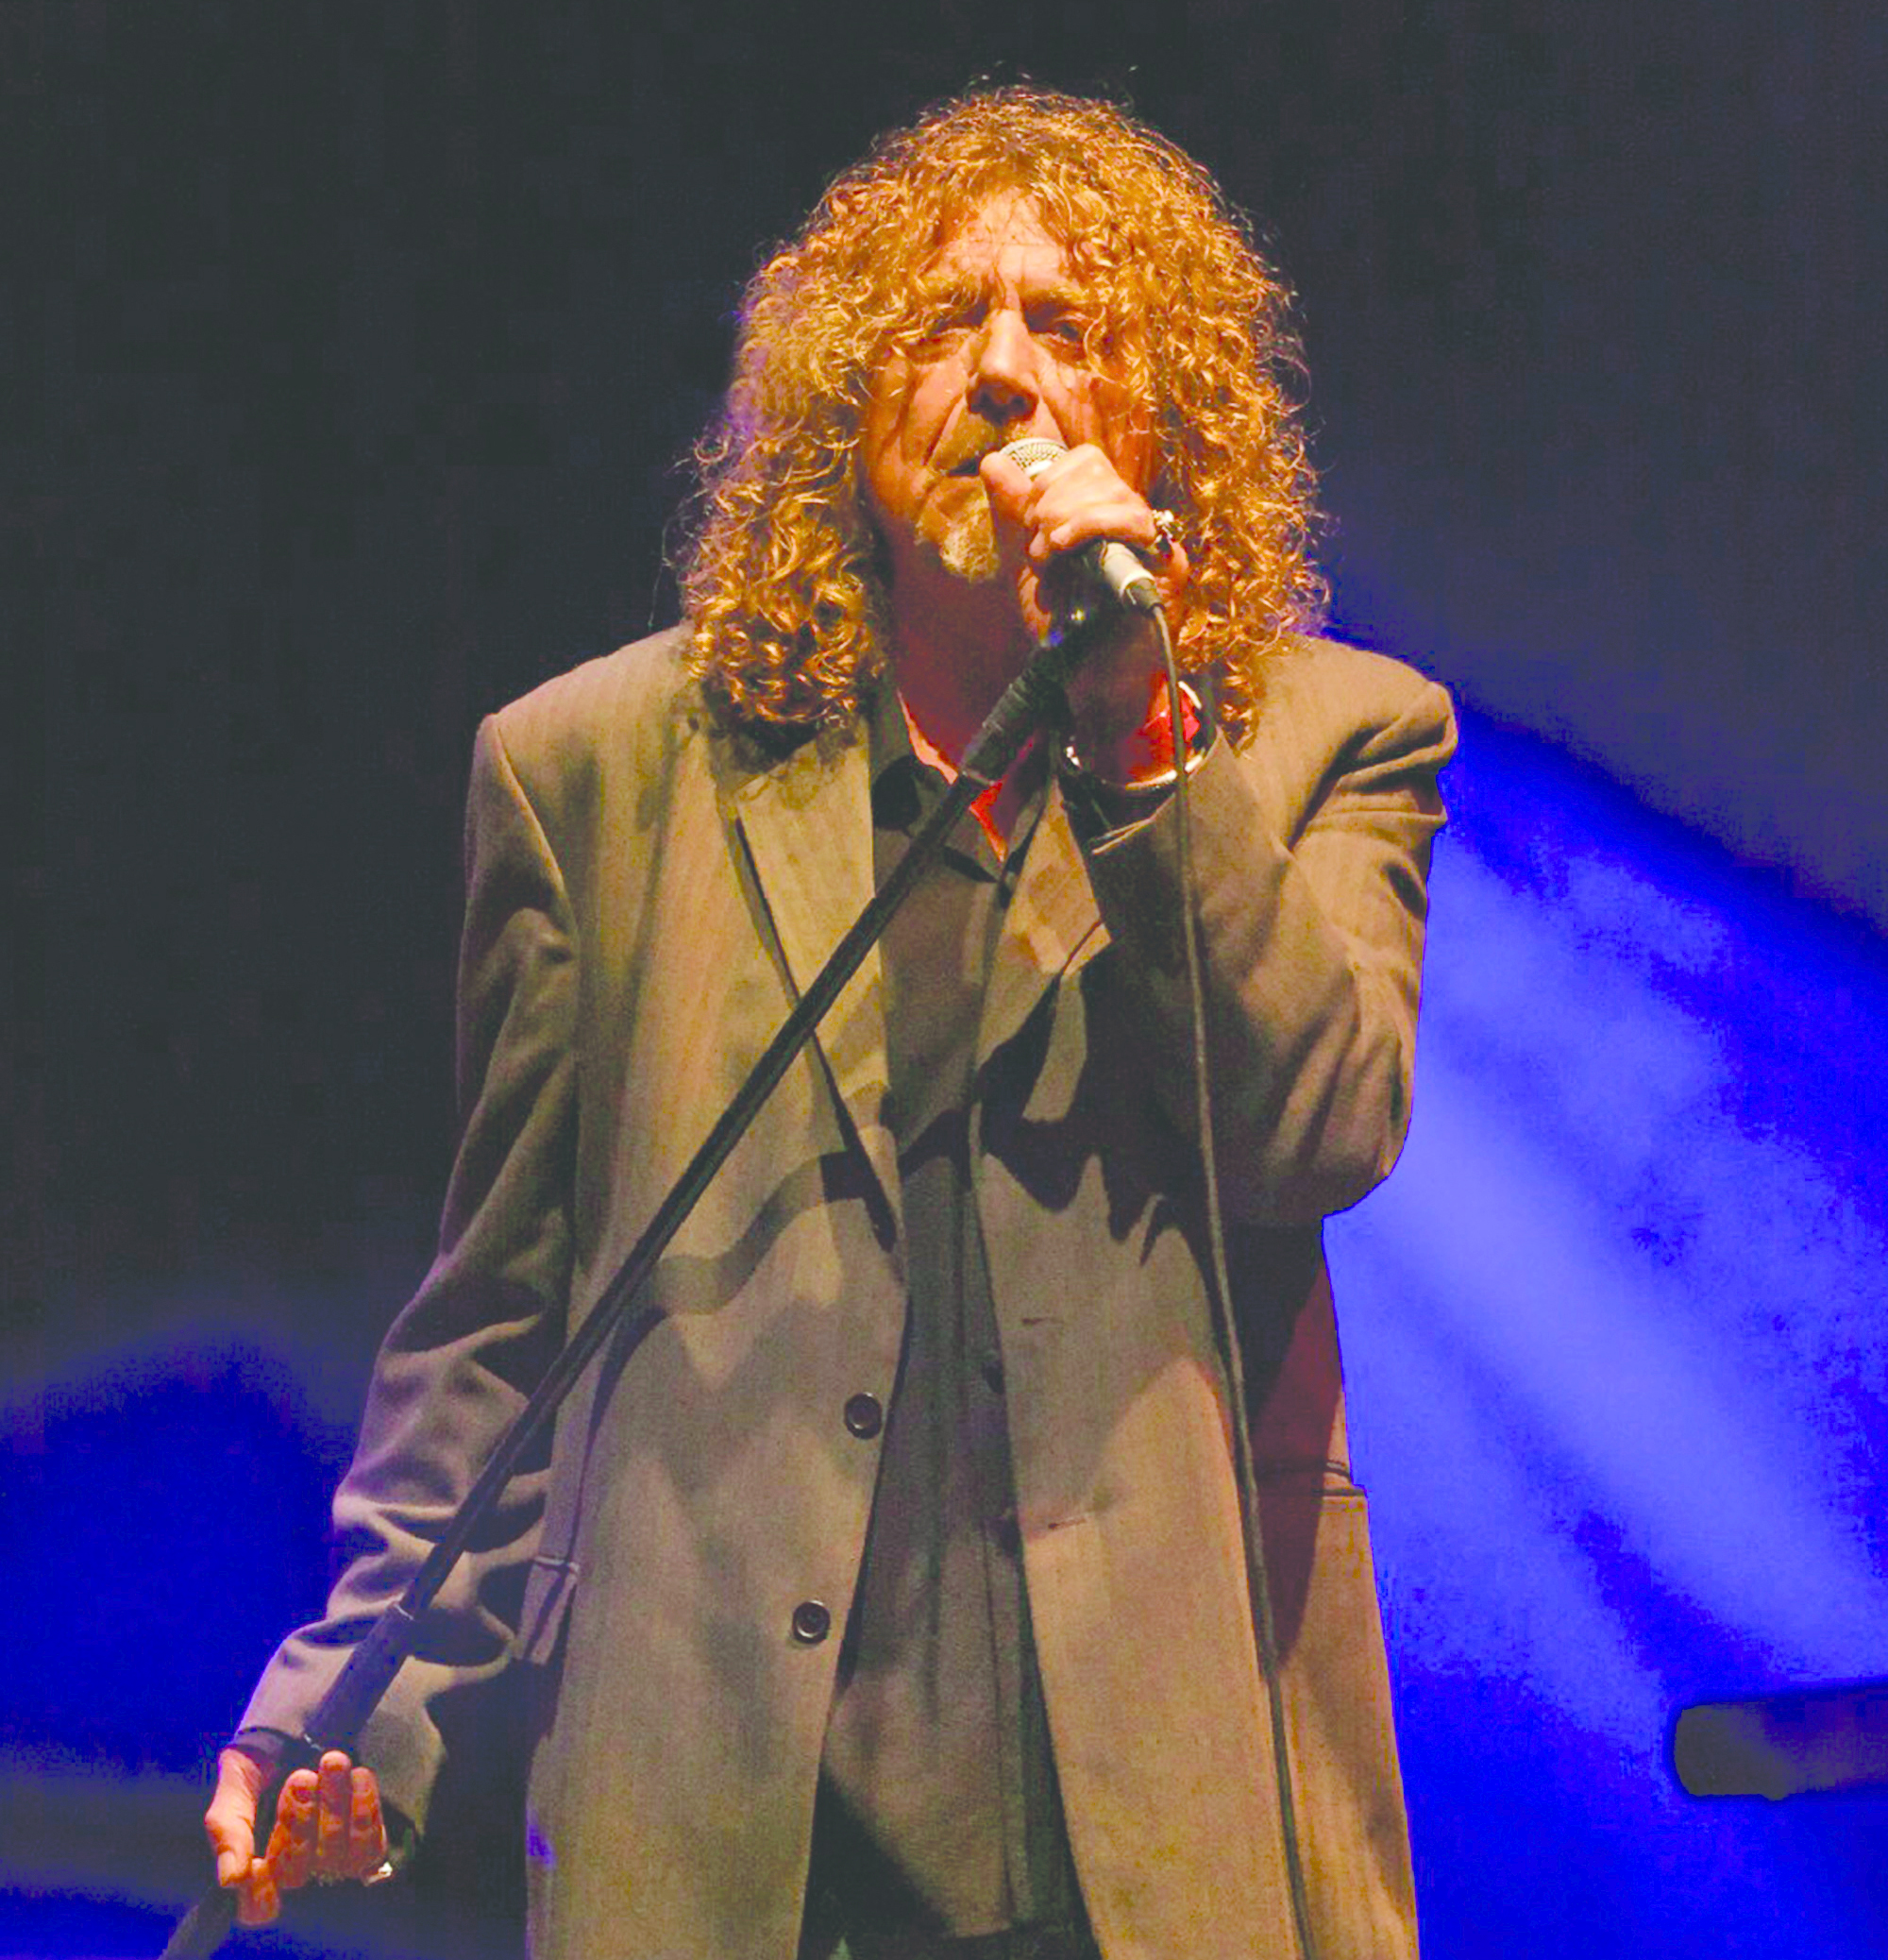 Robert Plant preforming at Fairport's Cropredy Convention in 2008